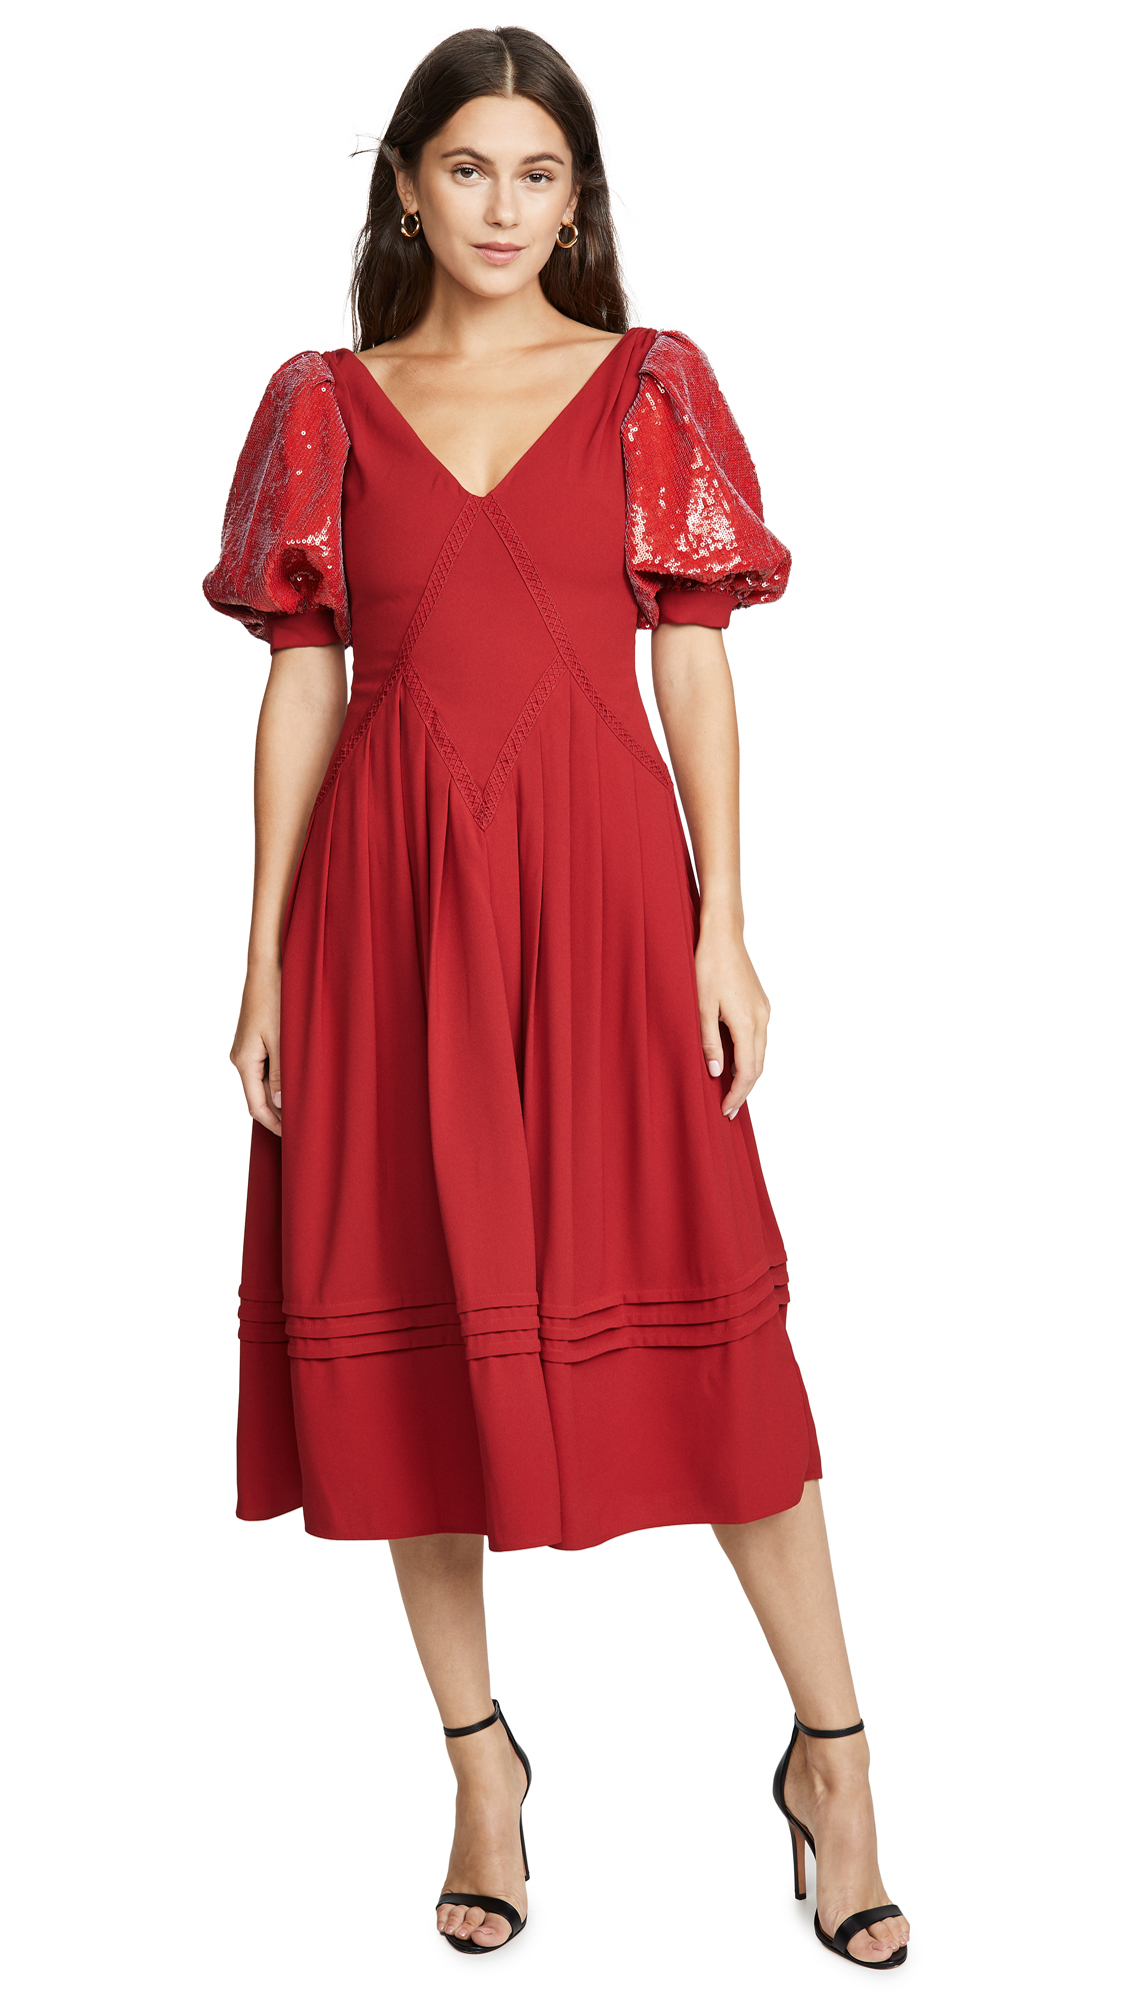 Buy Self Portrait Red Sequin Short Sleeve Midi Dress online beautiful Self Portrait Dresses, Strapless